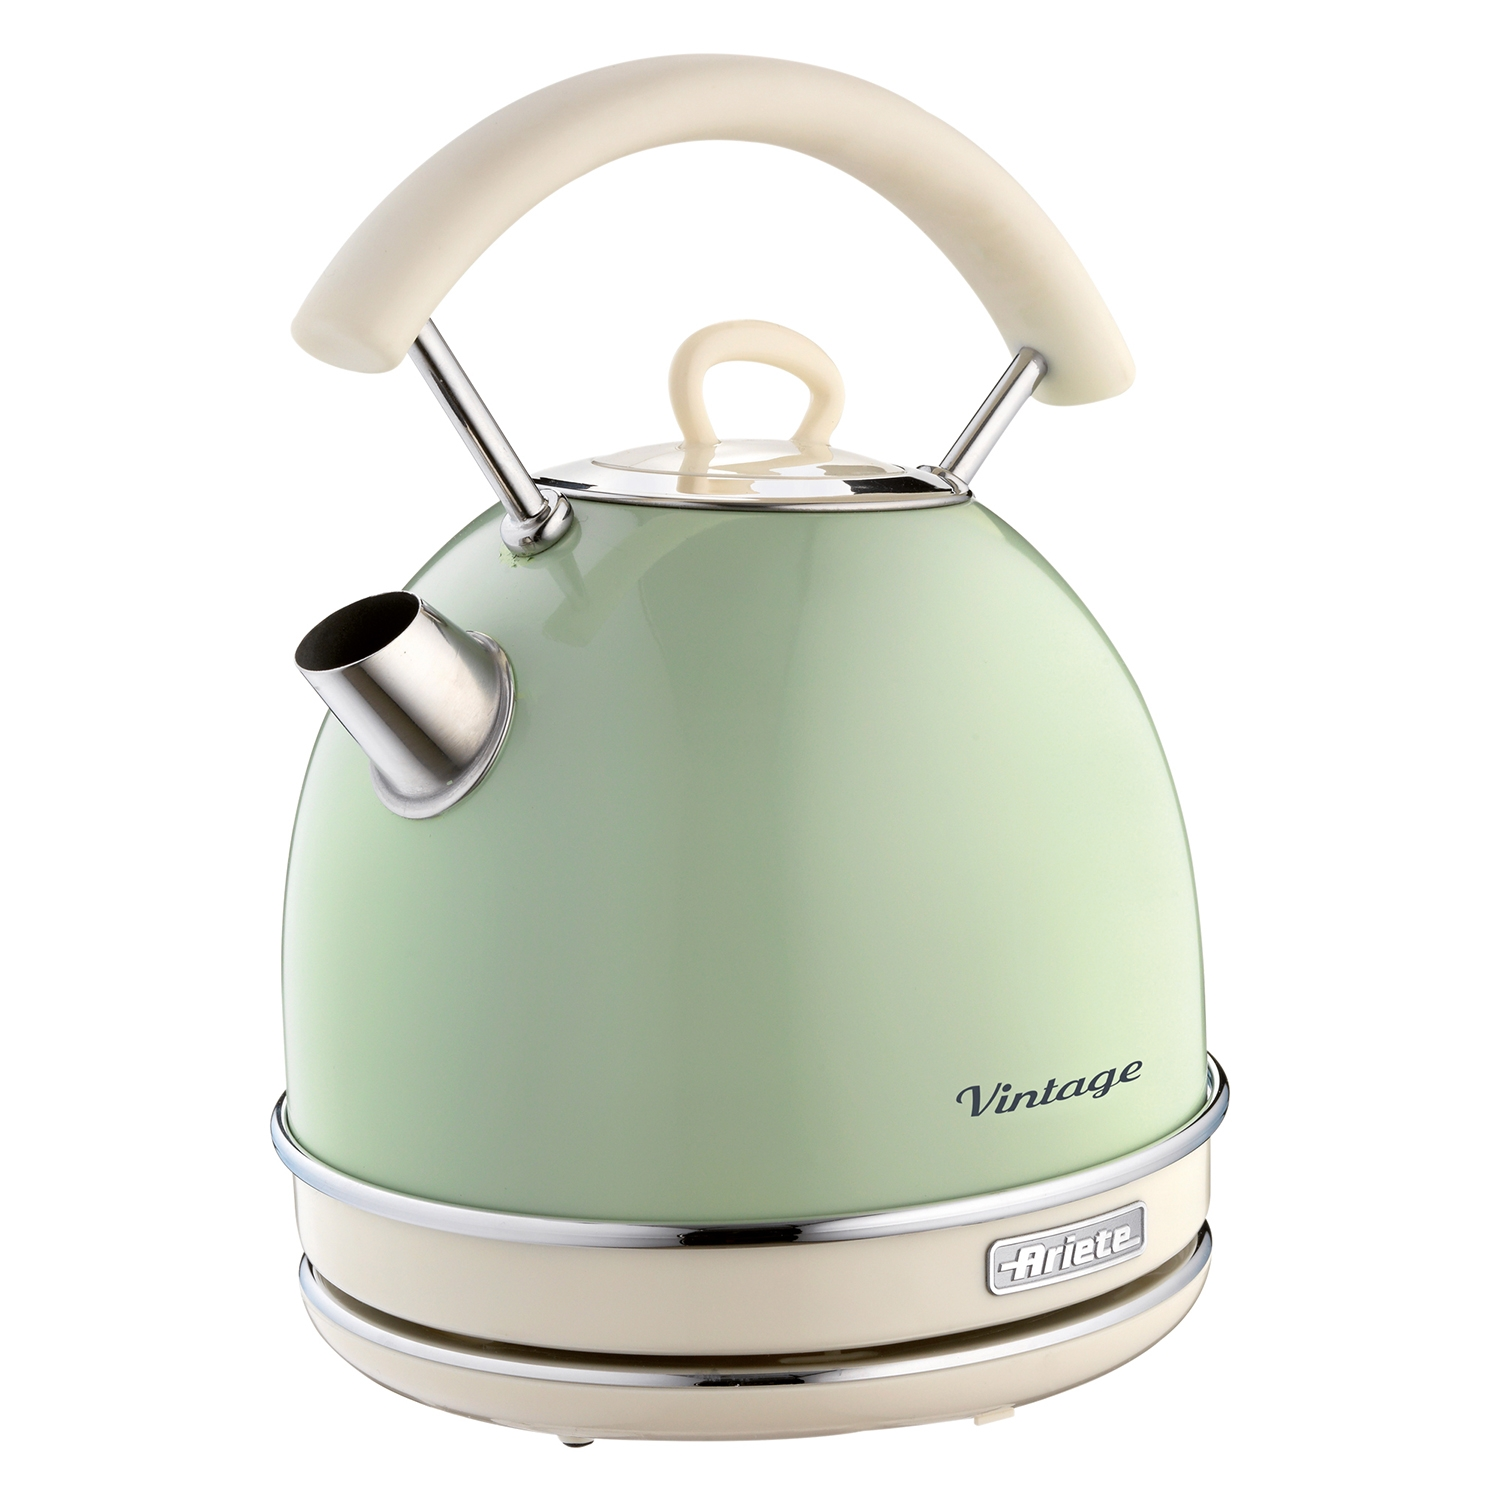 Image of Ariete Vintage Dome Kettle, Pastel Green